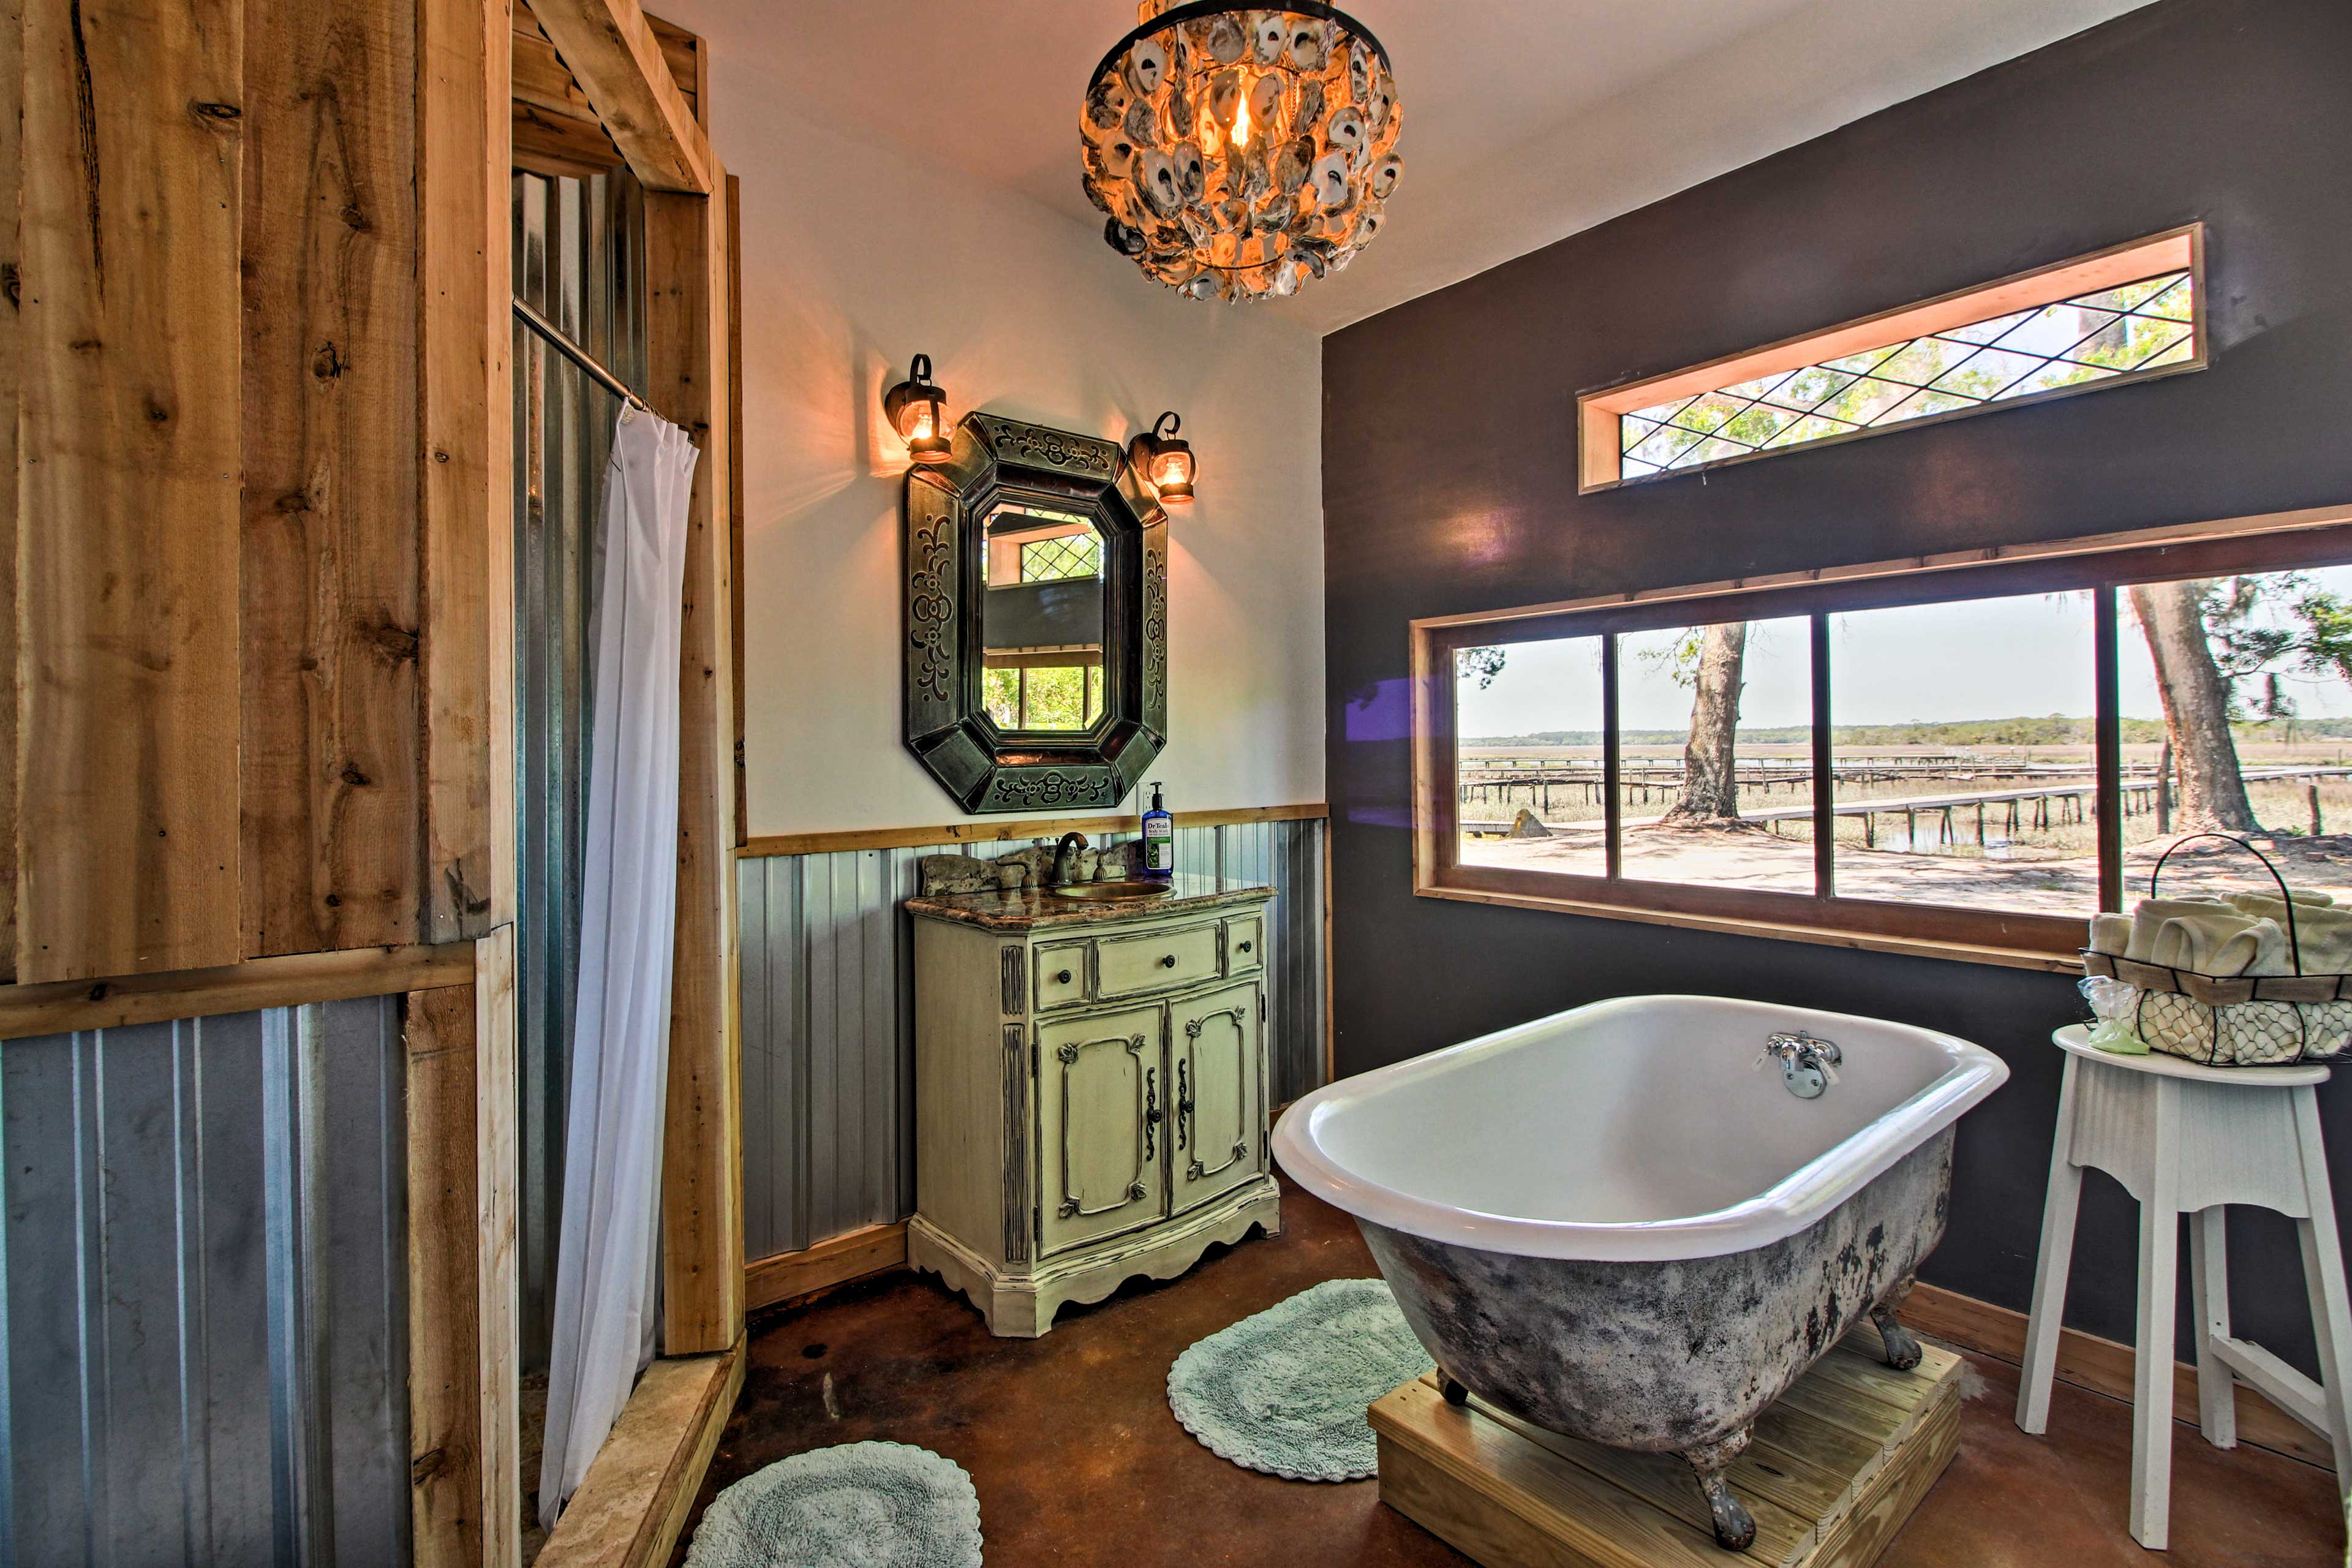 Soak in the claw foot tub as you enjoy the waterfront view!